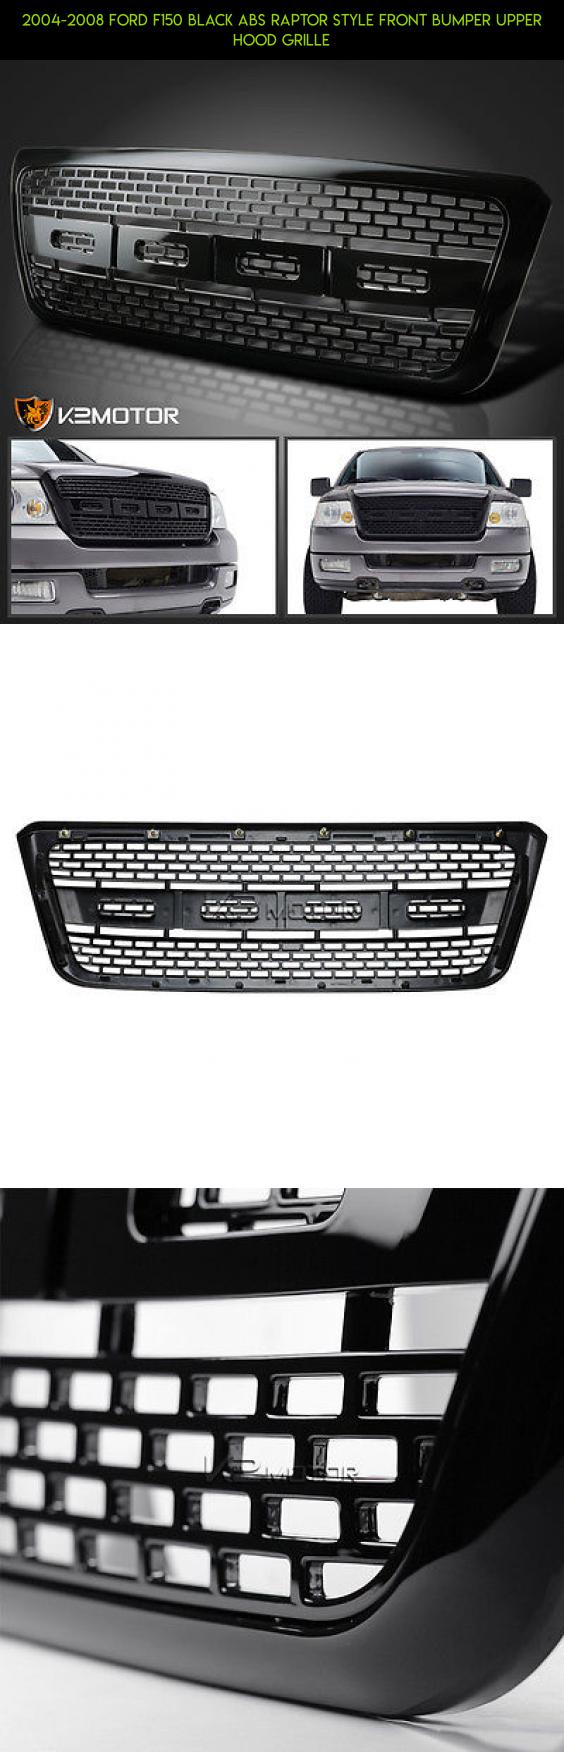 06 F150 Front Bumper : front, bumper, Outdoor-cooking